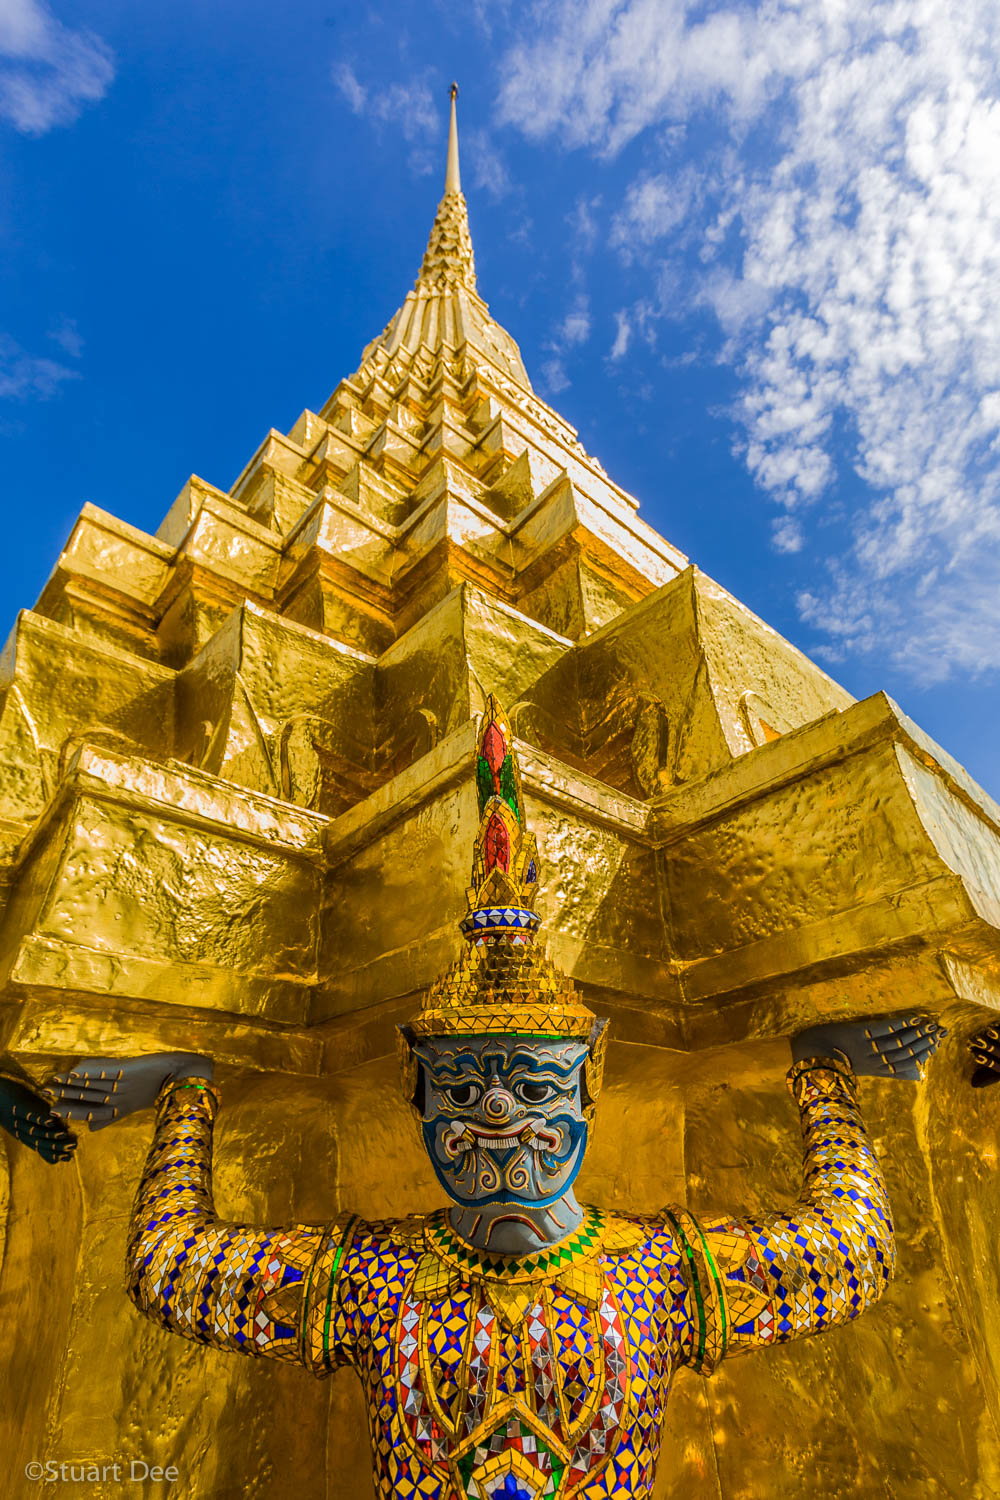 Yaksha(s) supporting a golden chedi. Grand Palace; Temple of the Emerald Buddha (Wat Phra Kaew), Bangkok, Thailand